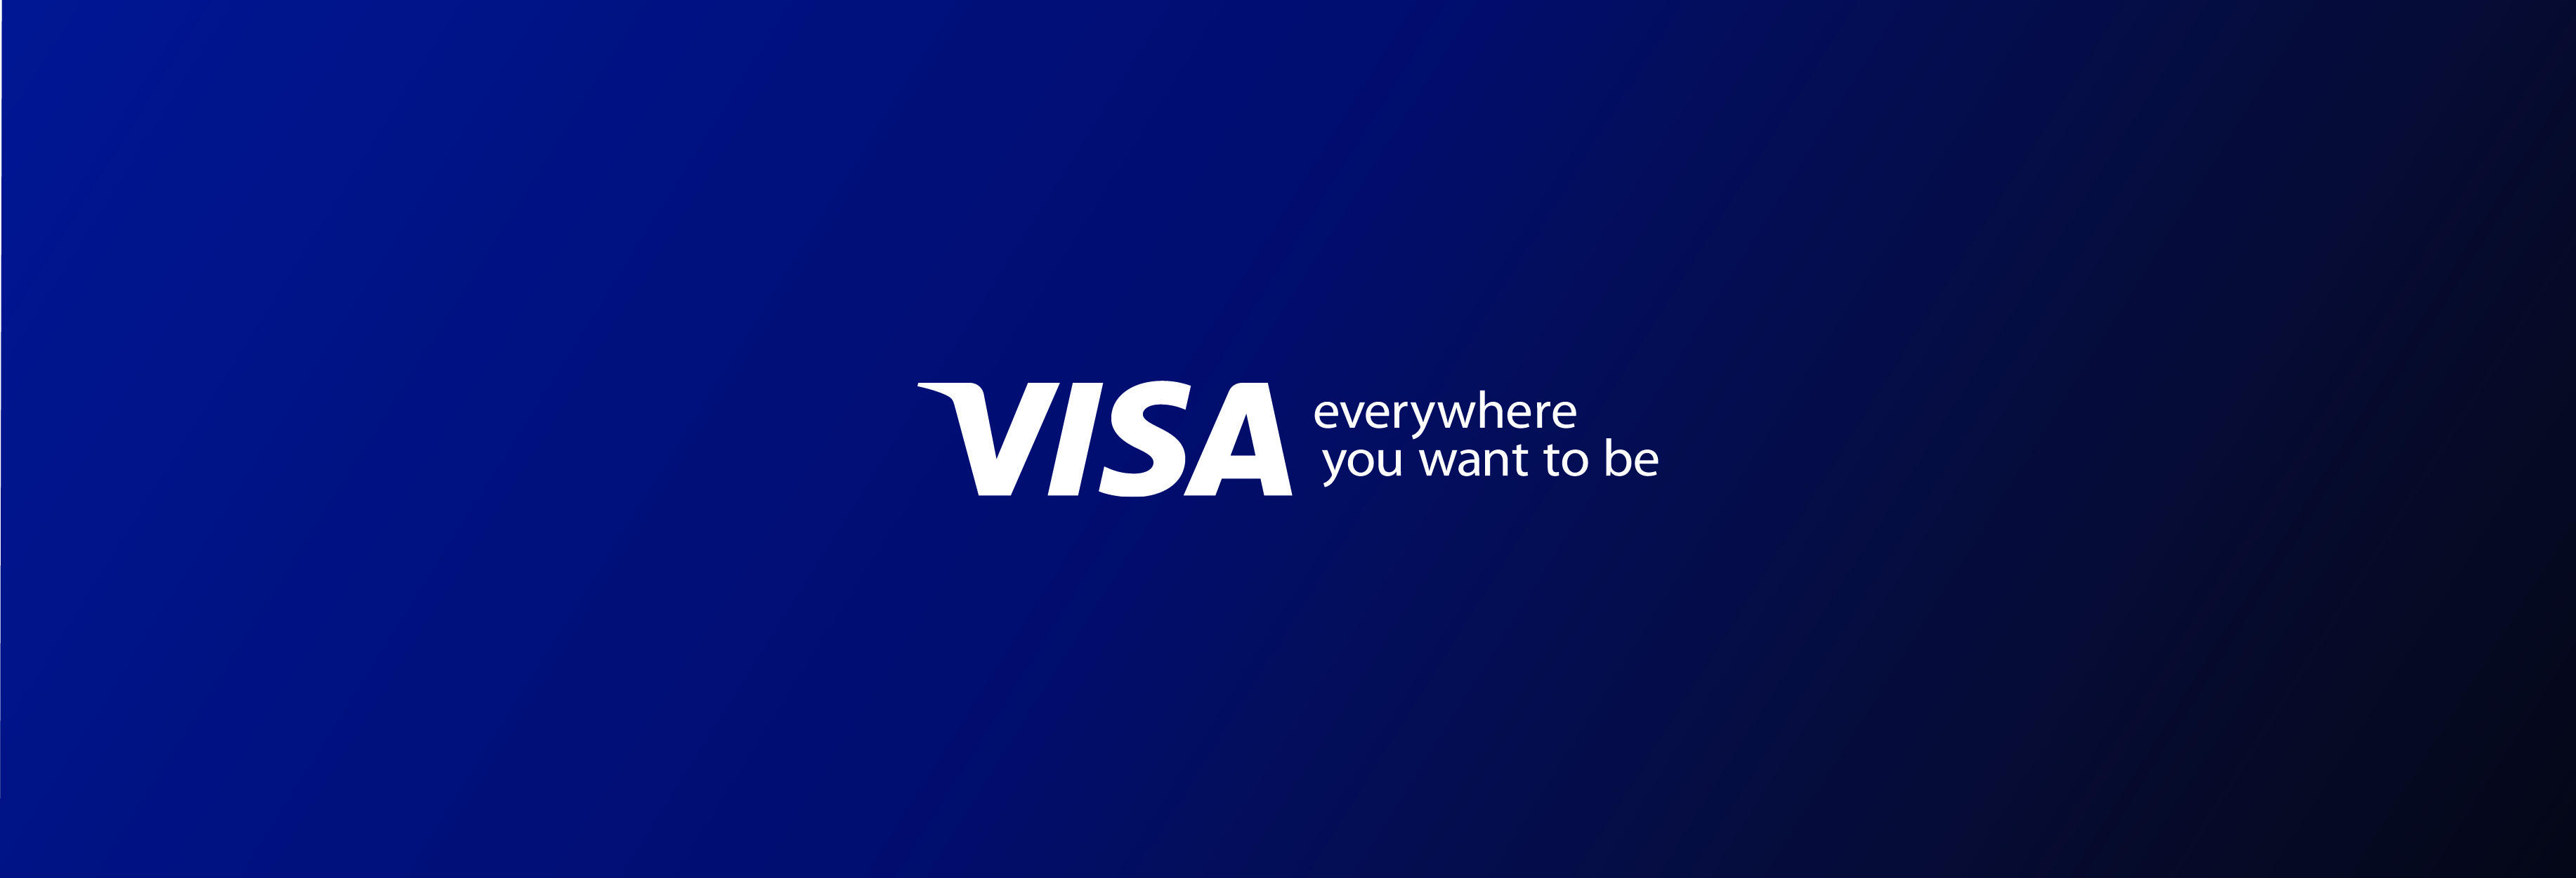 Visa 50% off for the entire week